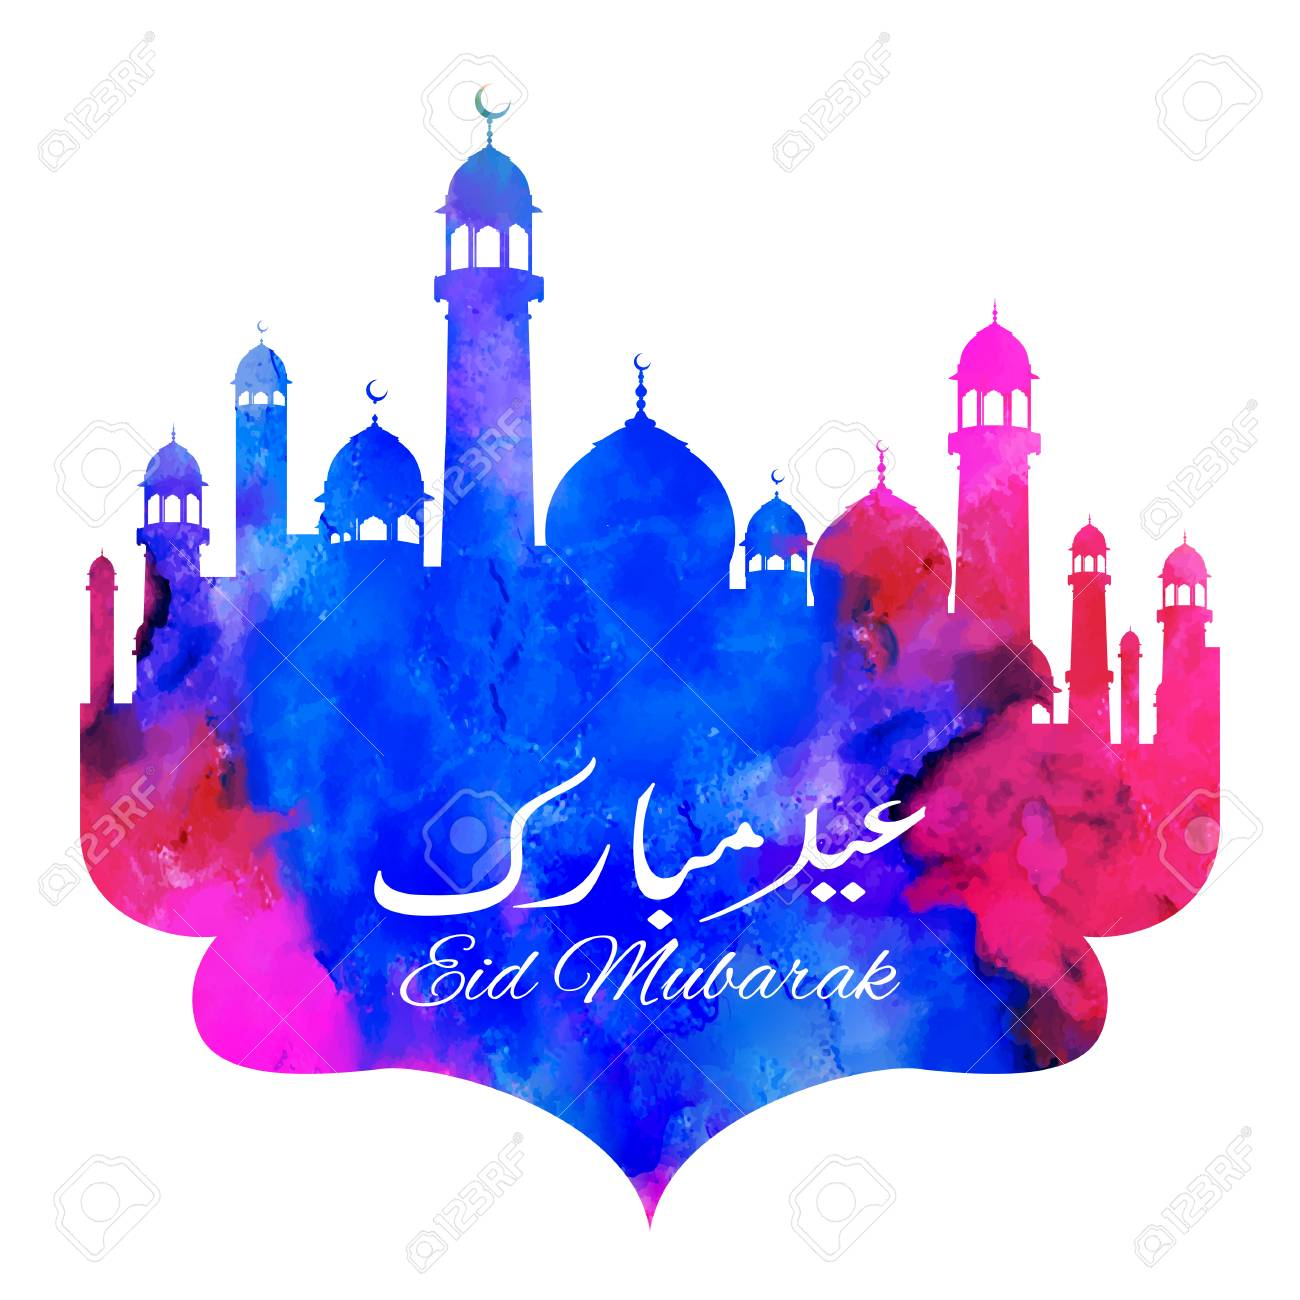 Eid Mubarak Happy Eid Greetings With Mosque Royalty Free Cliparts